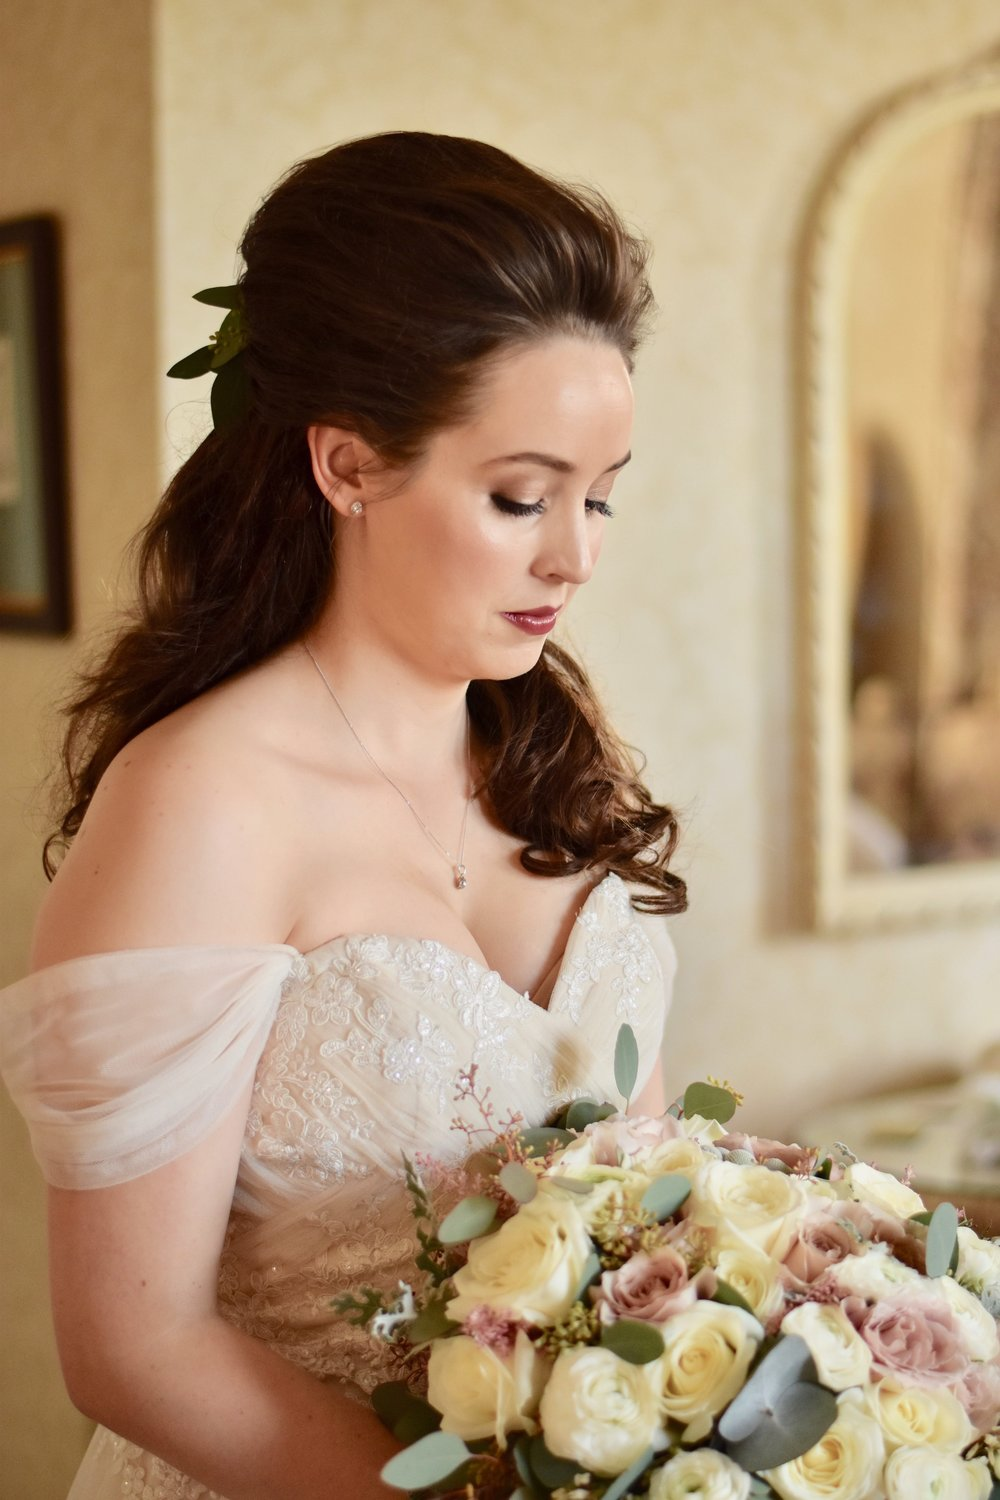 Real Brides on their wedding day. Very natural and beautiful-min.JPG